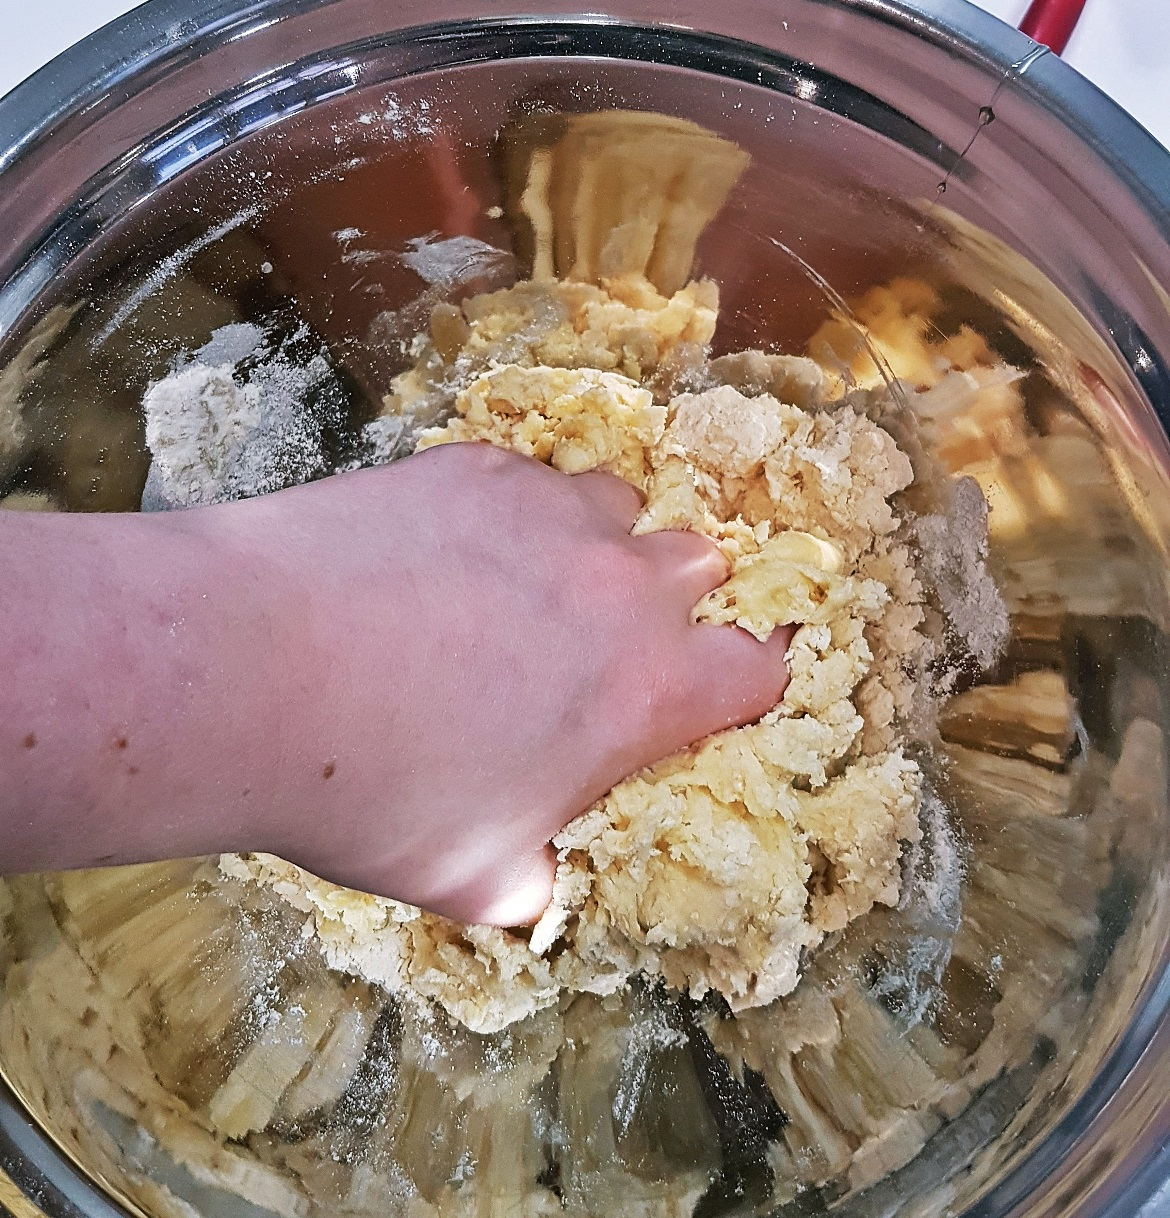 Partially kneaded pasta dough - Leeds Cookery School review by BeckyBecky Blogs